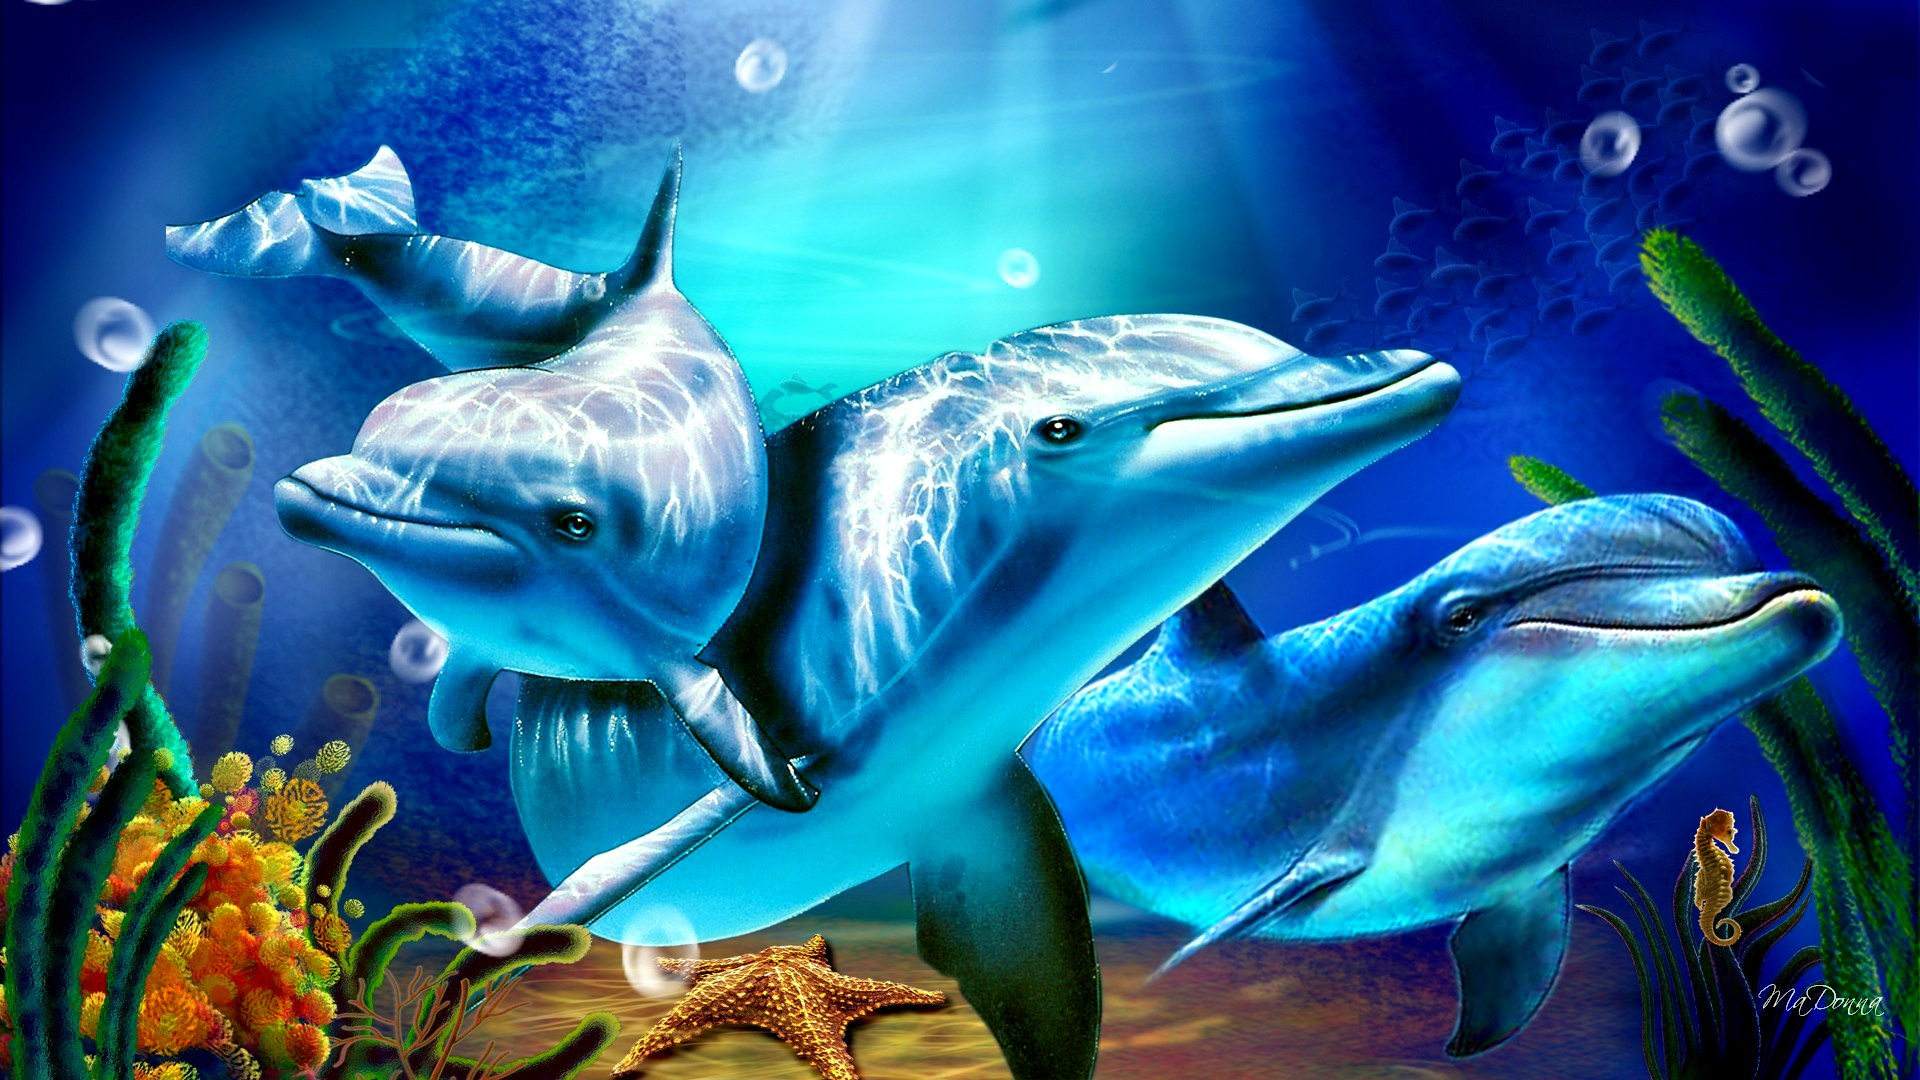 Dolphins wallpapers high definition wallpapers cool nature - Dolphin Sunbeams Exclusive Hd Wallpapers 5879